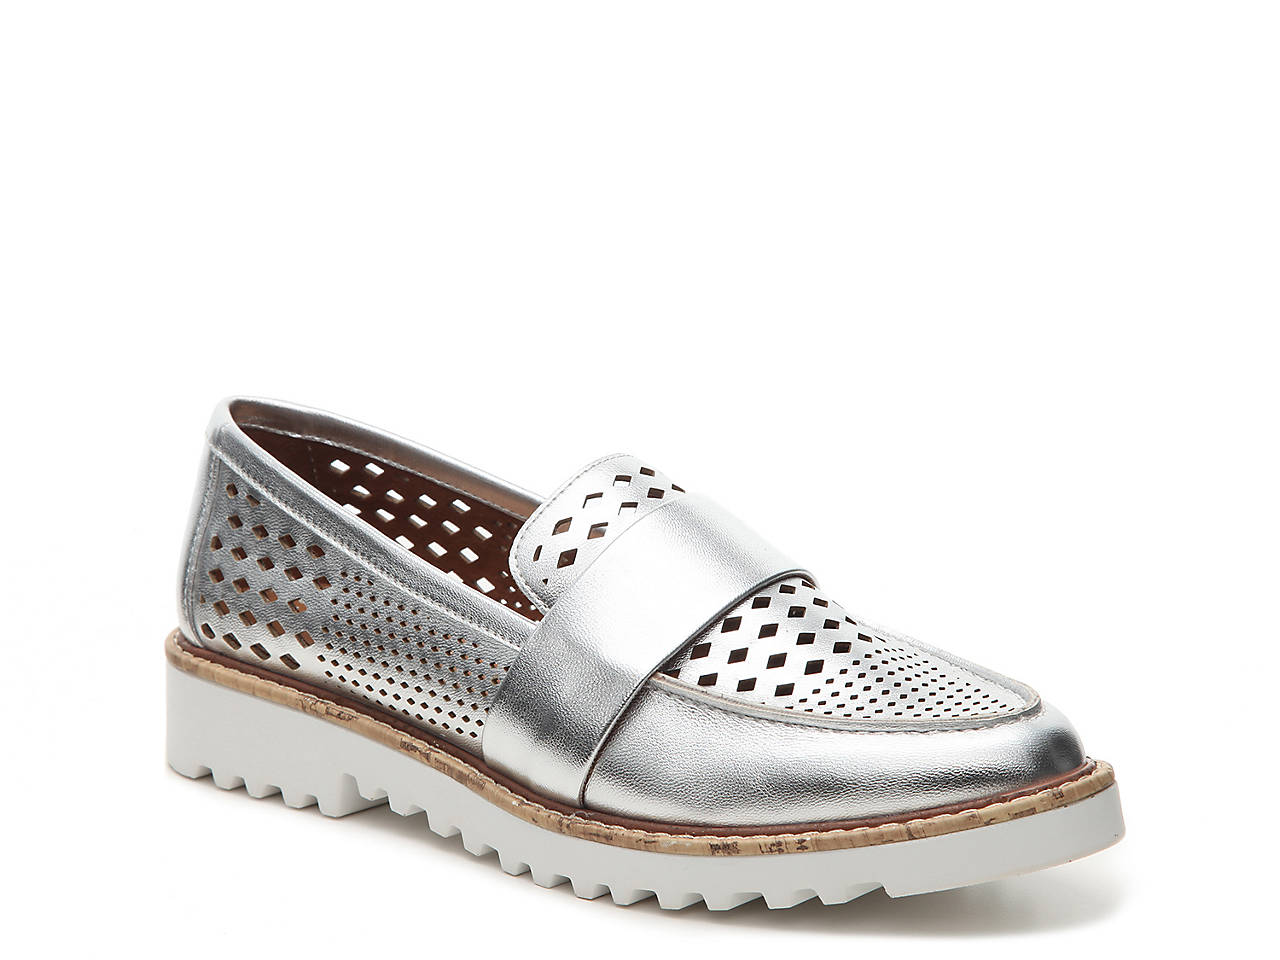 7fa14bfffdb Crown Vintage Miaa Loafer Women s Shoes